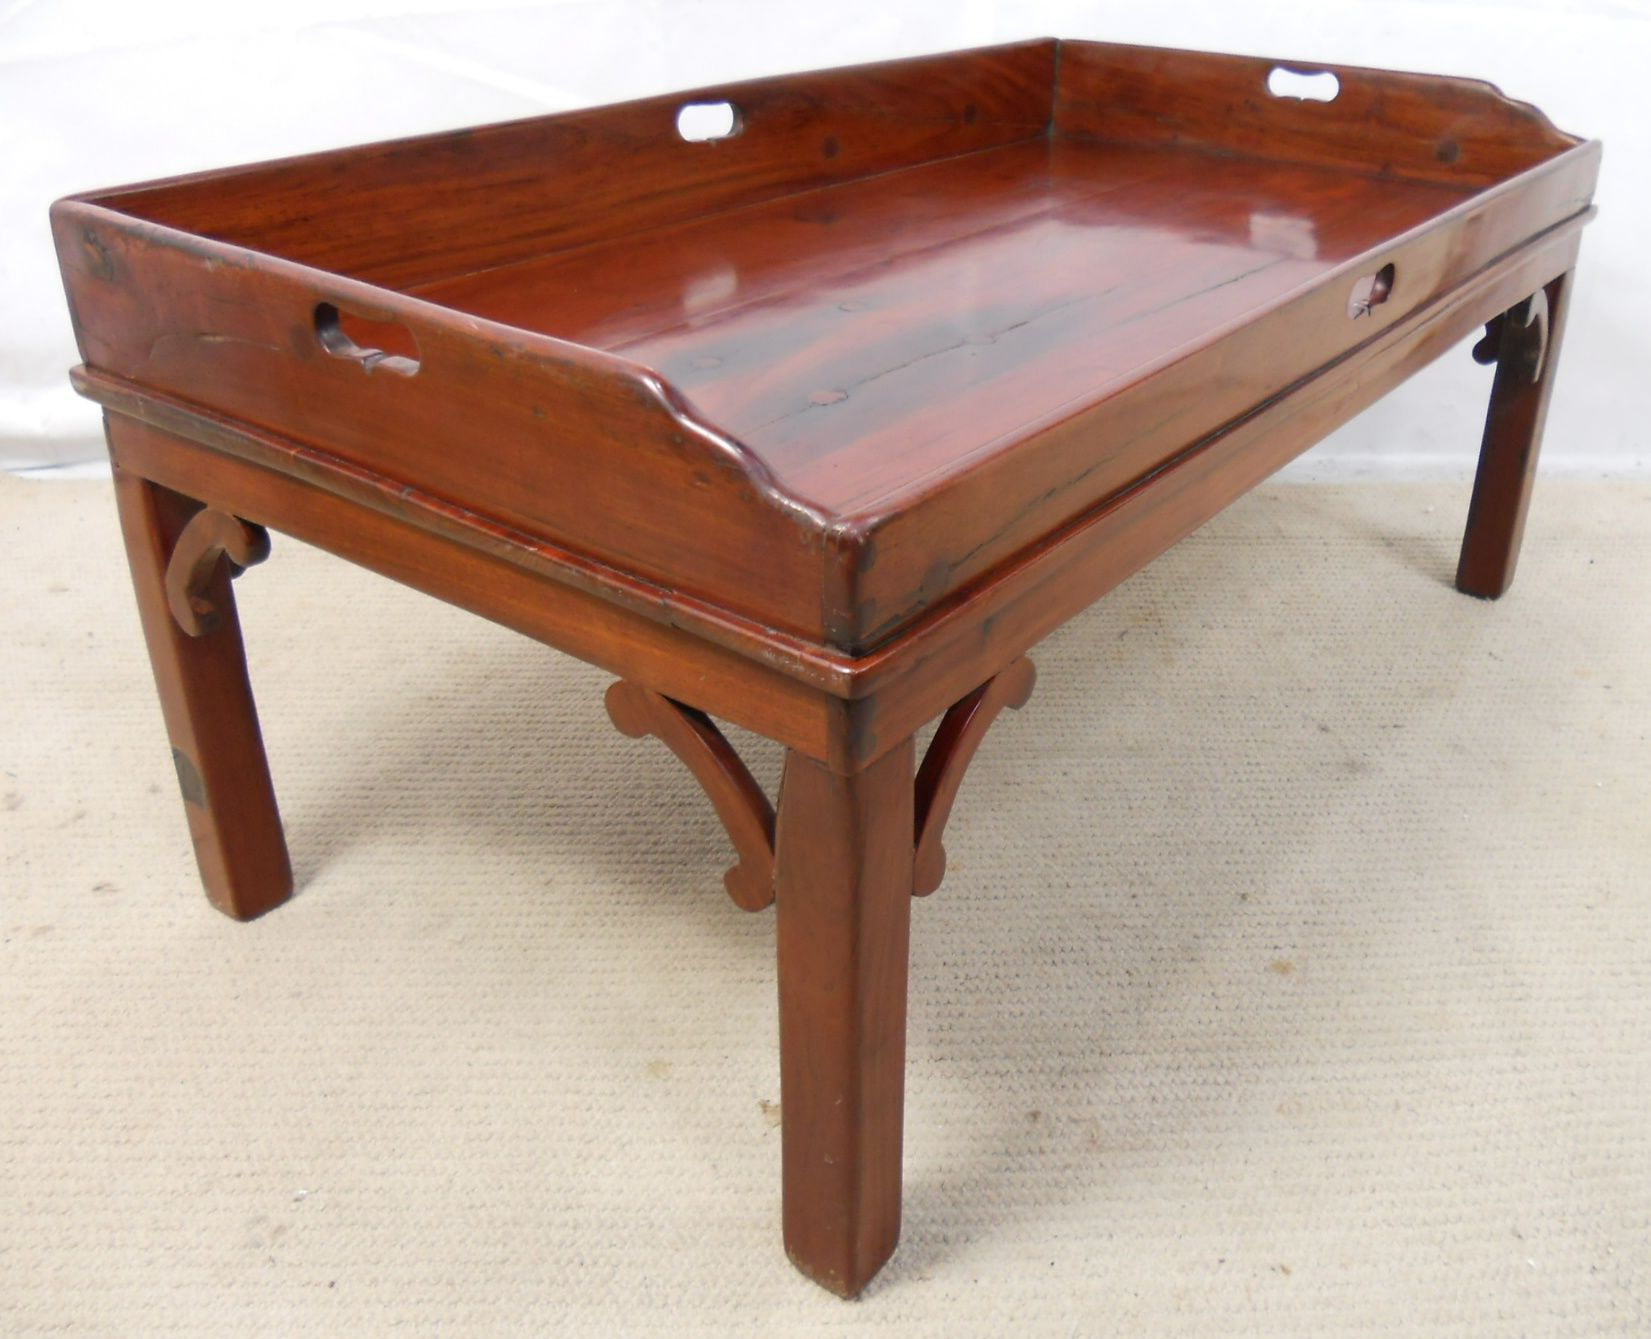 Large Tray For Coffee Table Linley Dining Large Coffee Tray Table Luxury Gifts Homeware